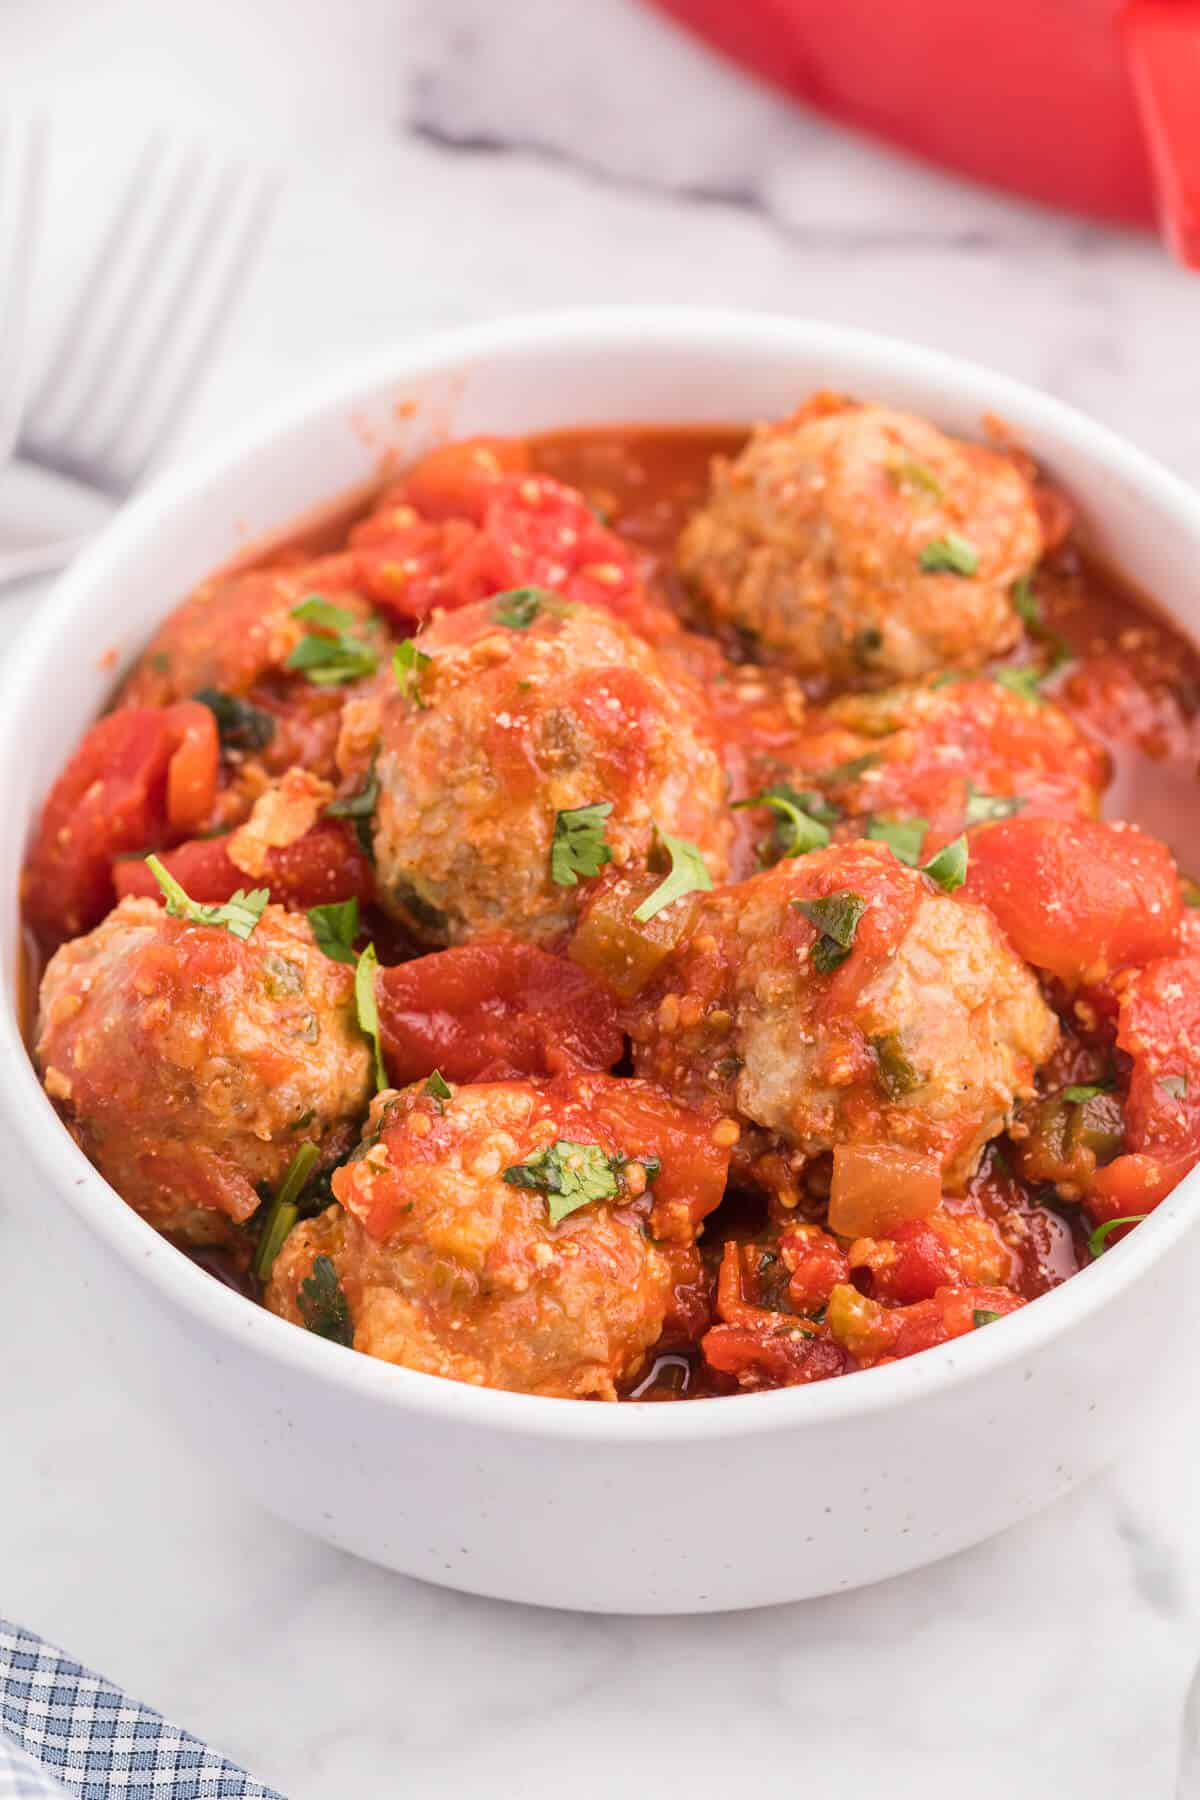 Mexican Meatballs - A fun new spin on the traditional meatball. Serve as an appetizer or add them to a pasta dish!